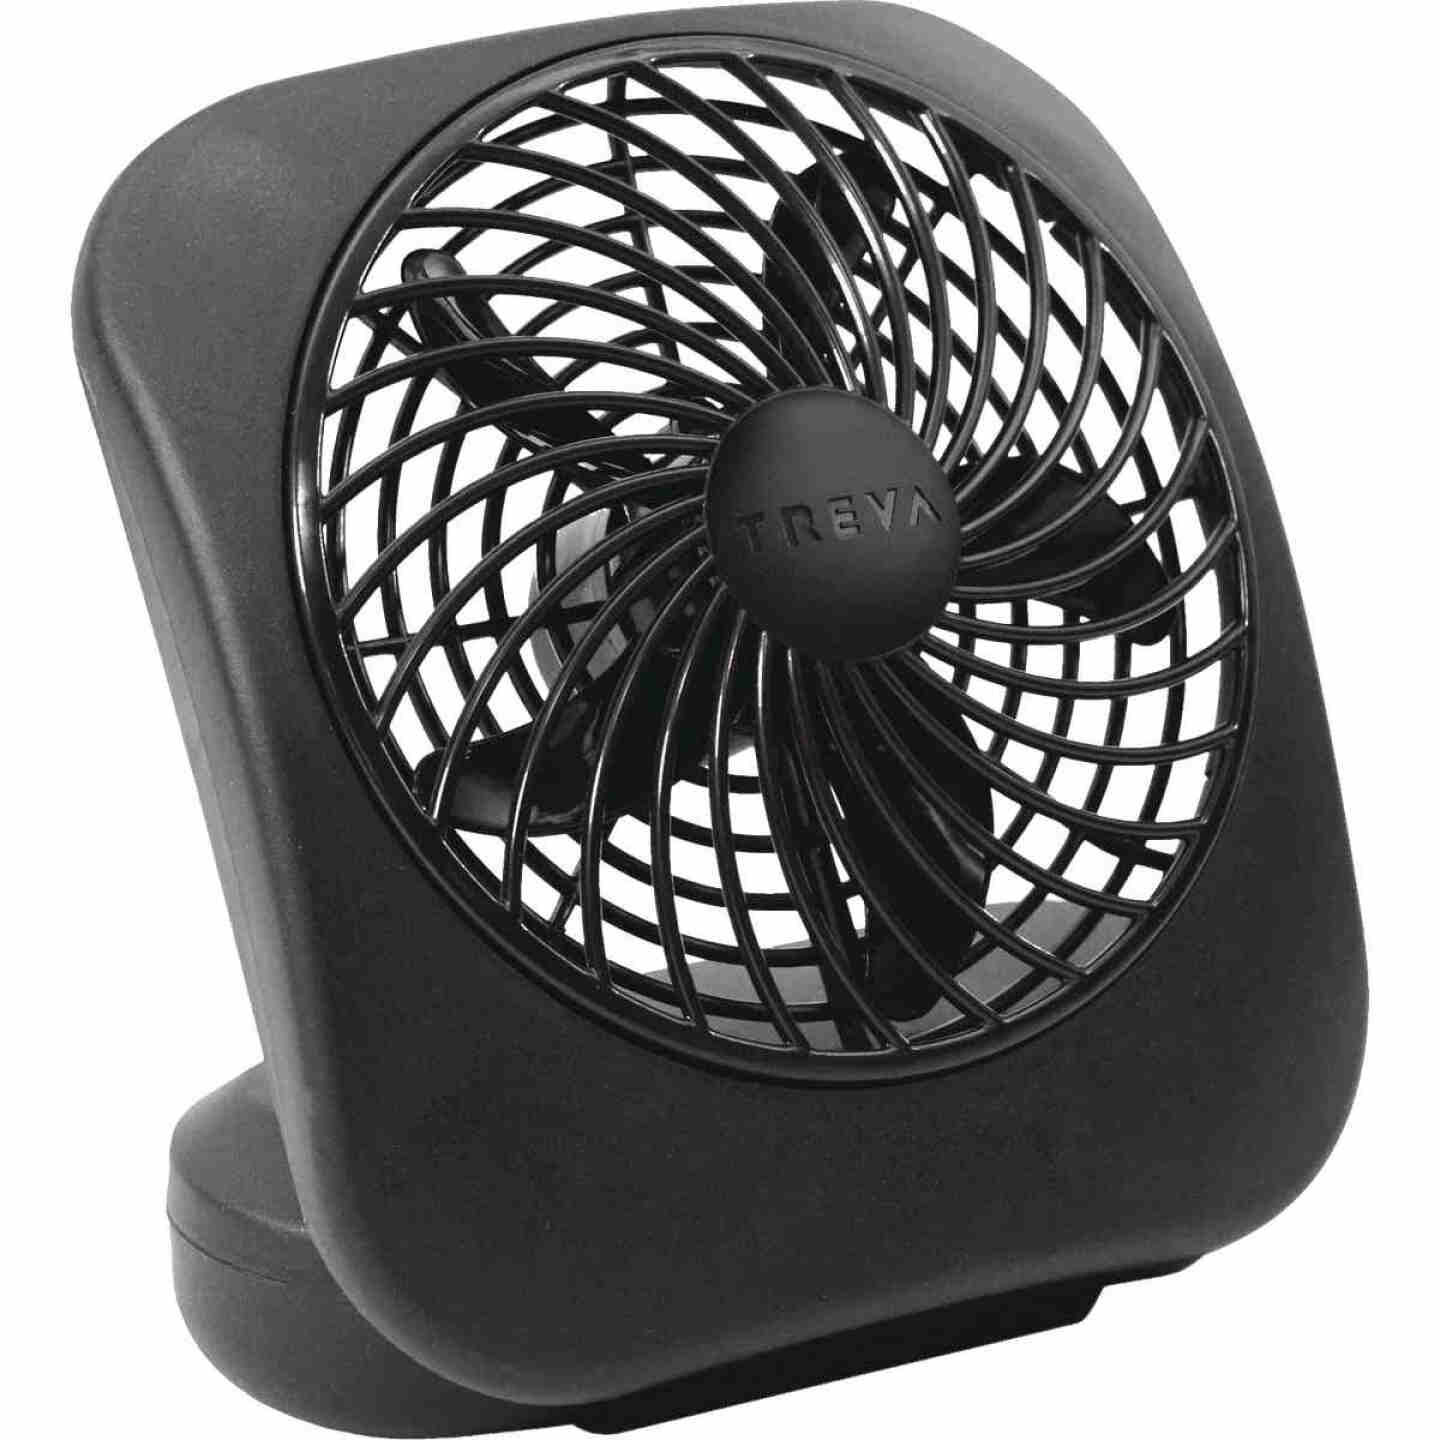 Treva 5 In. 2-Speed Black Battery Operated Table Fan Image 1